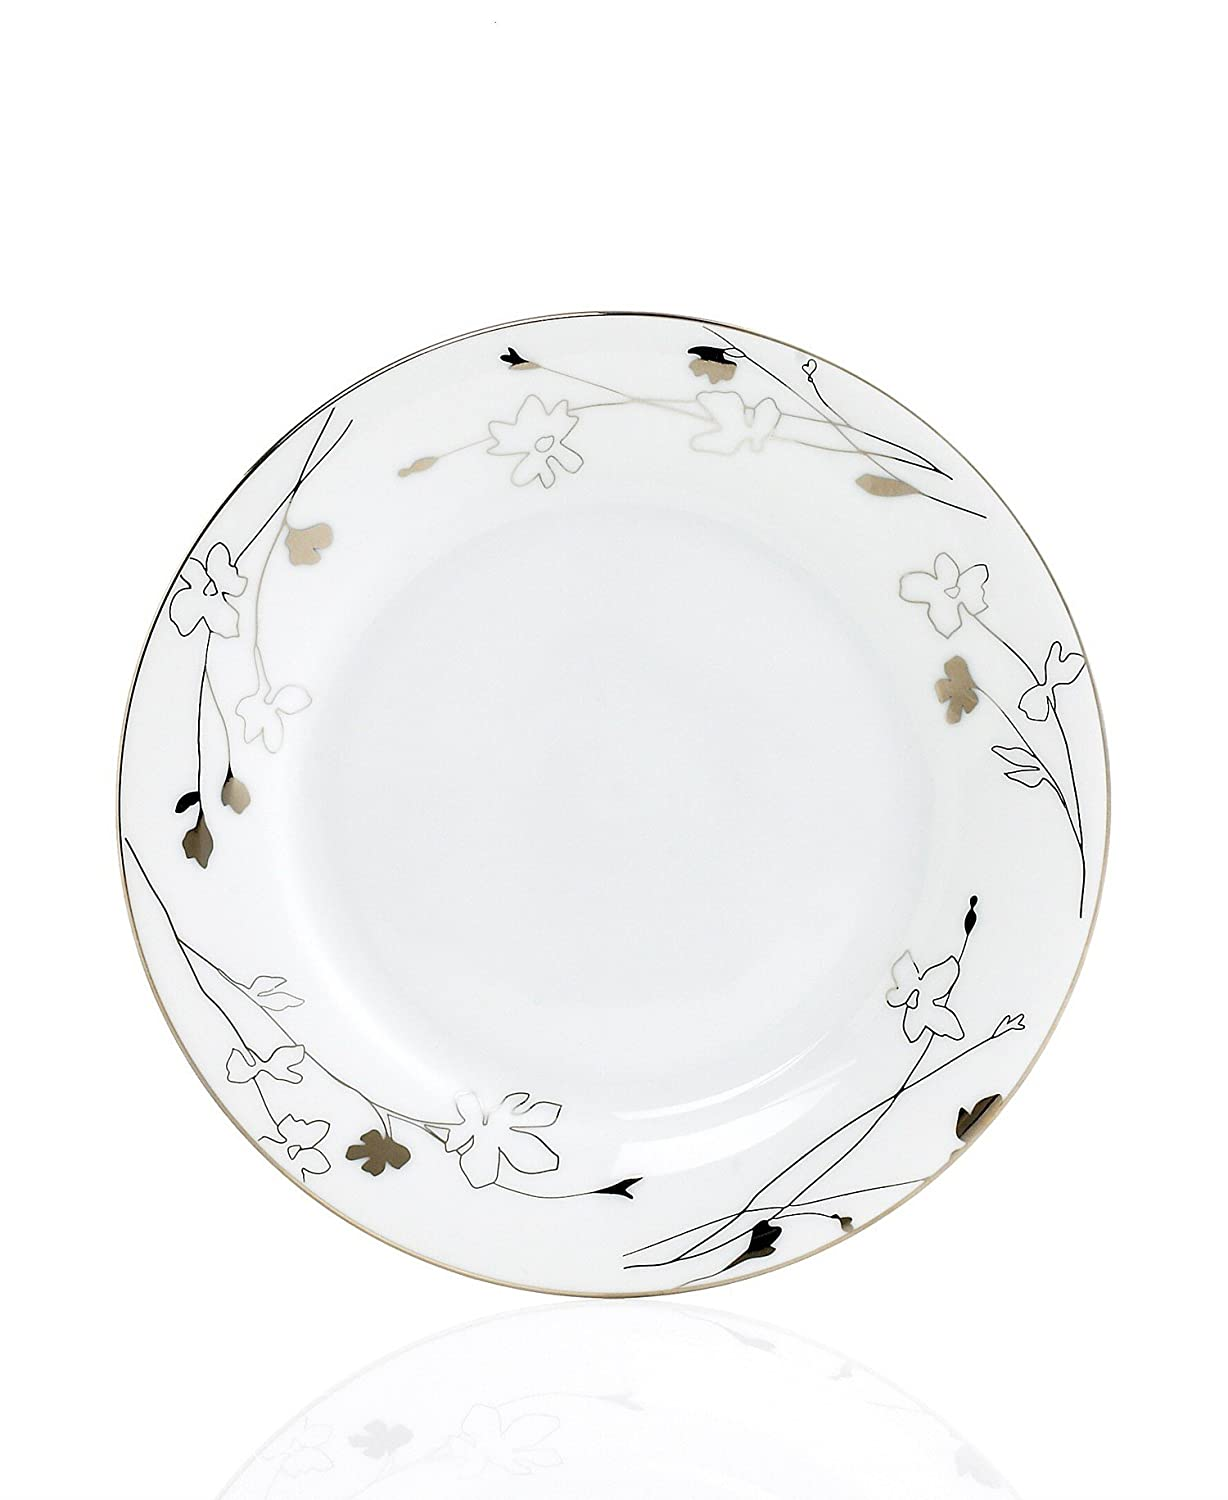 Miraculous Charter Club Dinnerware Grand Buffet Platinum Silhouette Round Salad Plate Home Interior And Landscaping Transignezvosmurscom